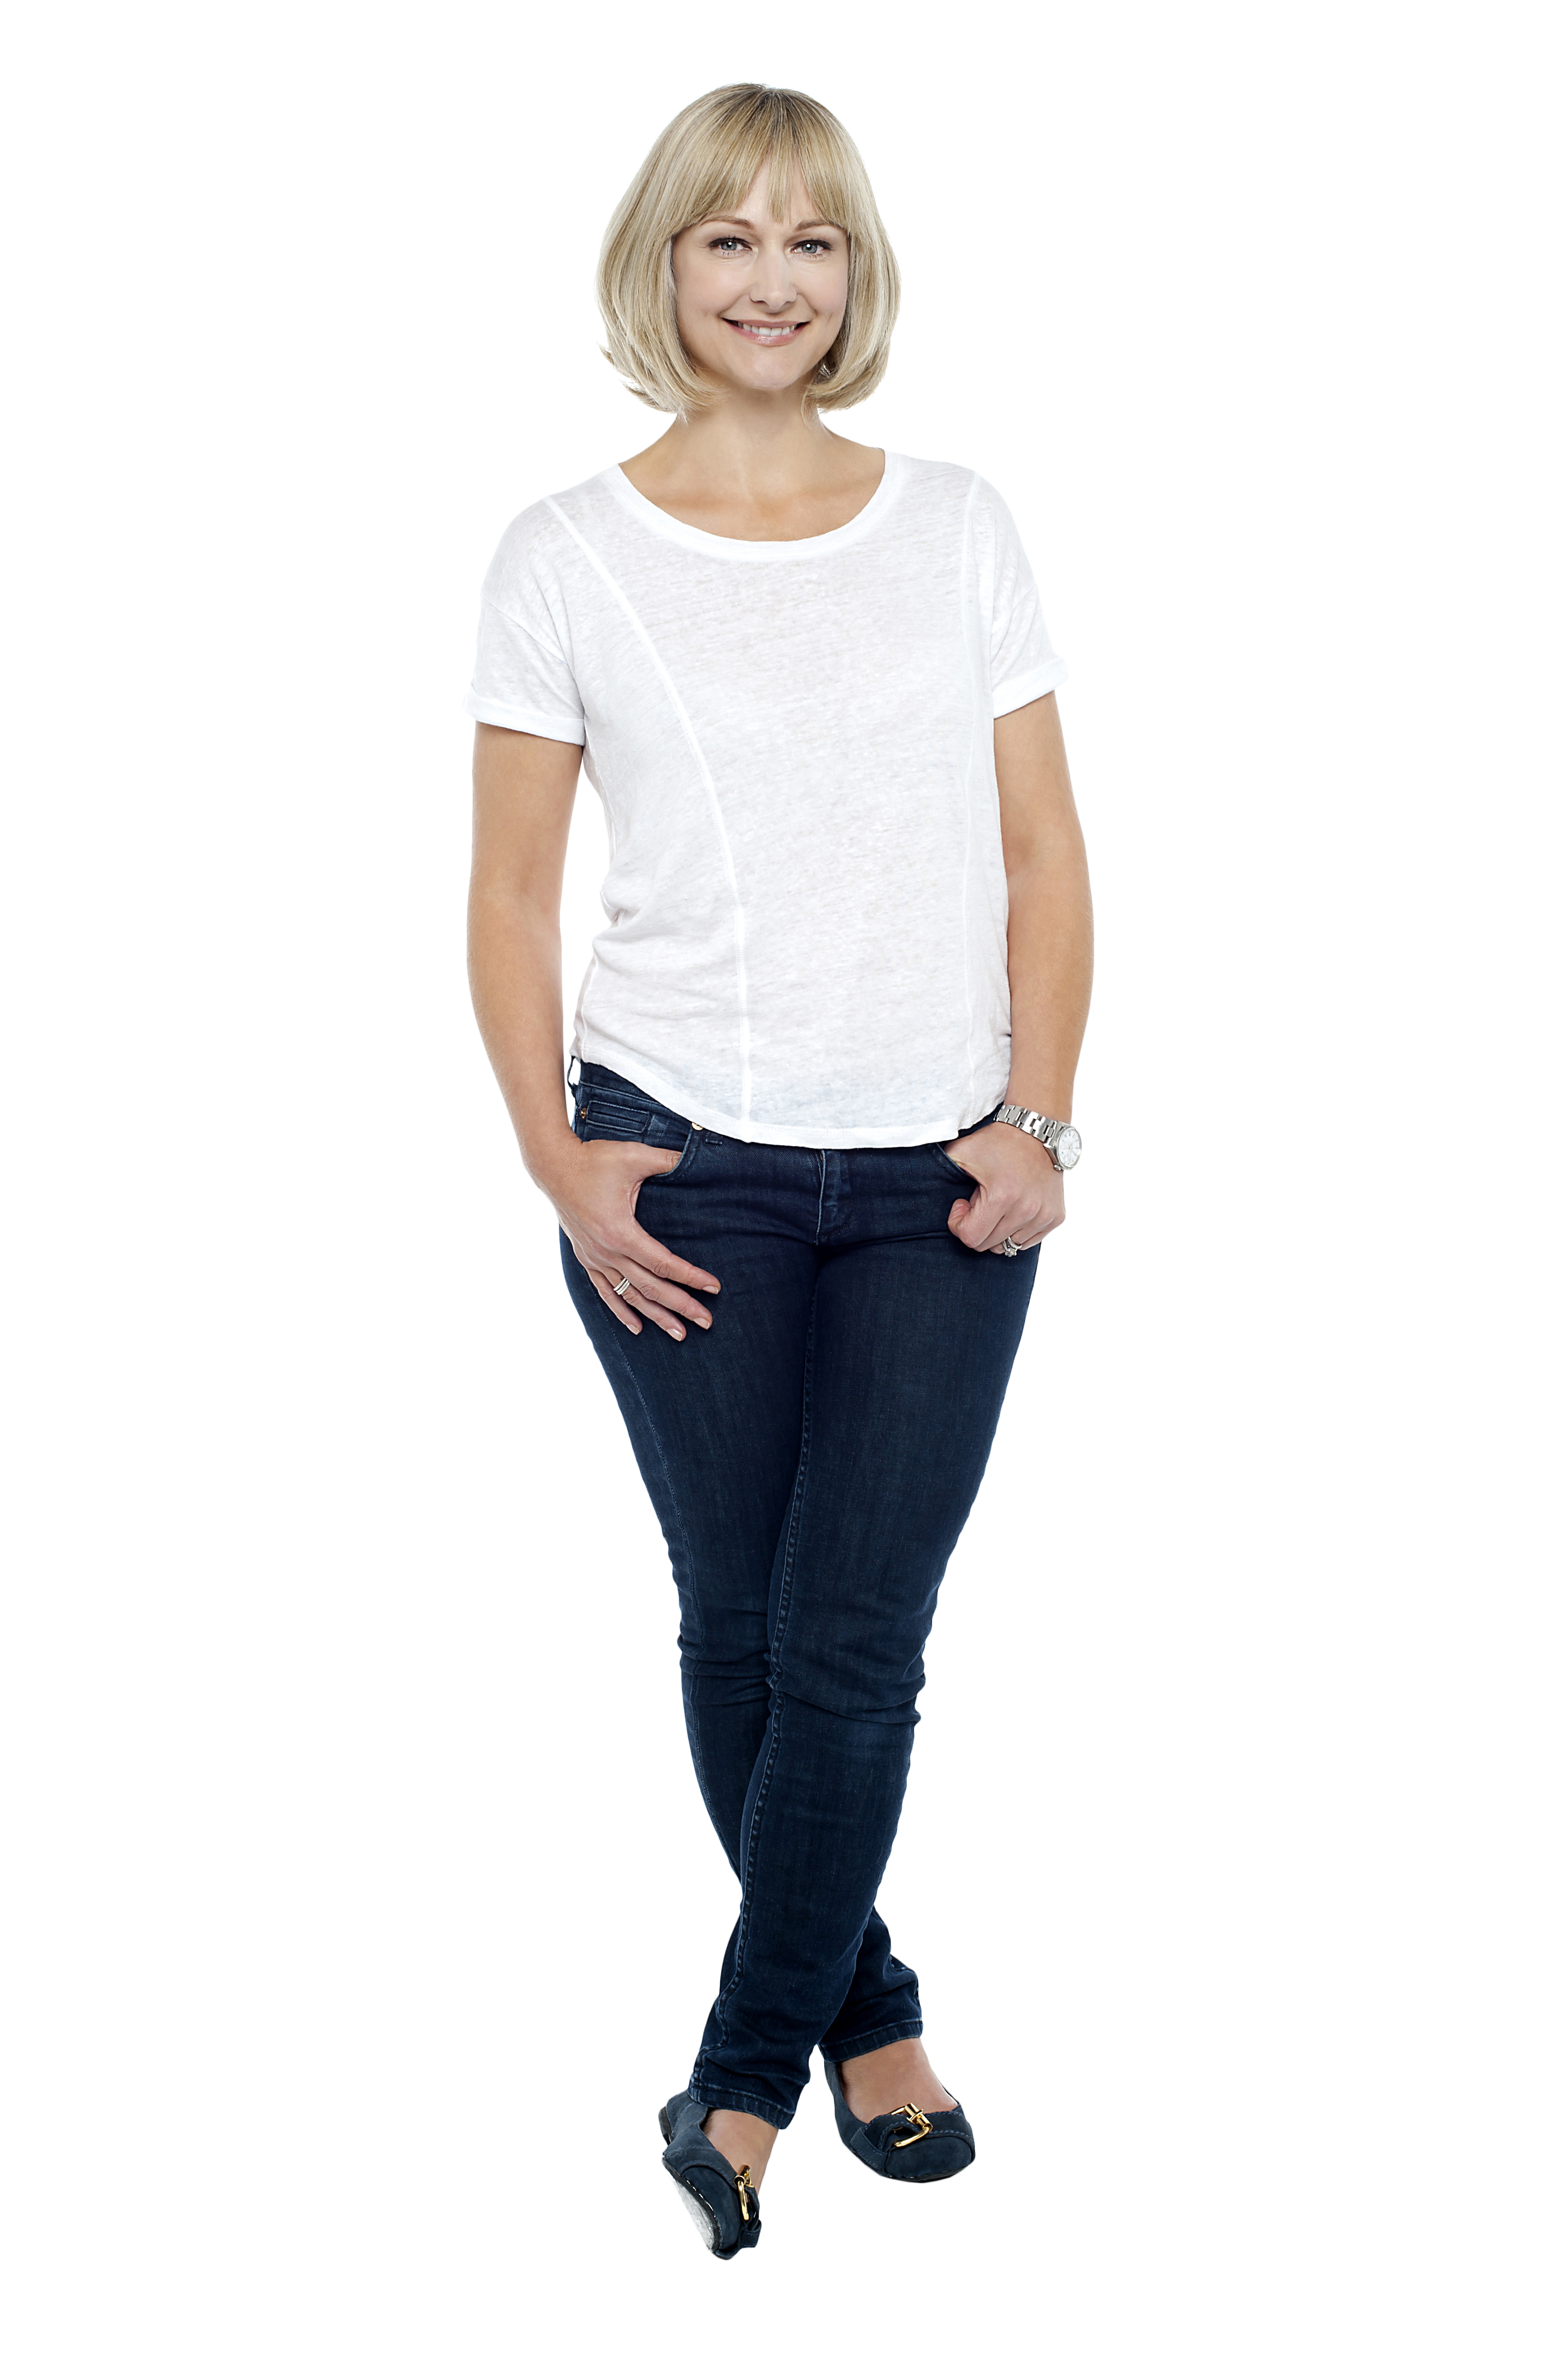 Transparent women background. Standing png image purepng